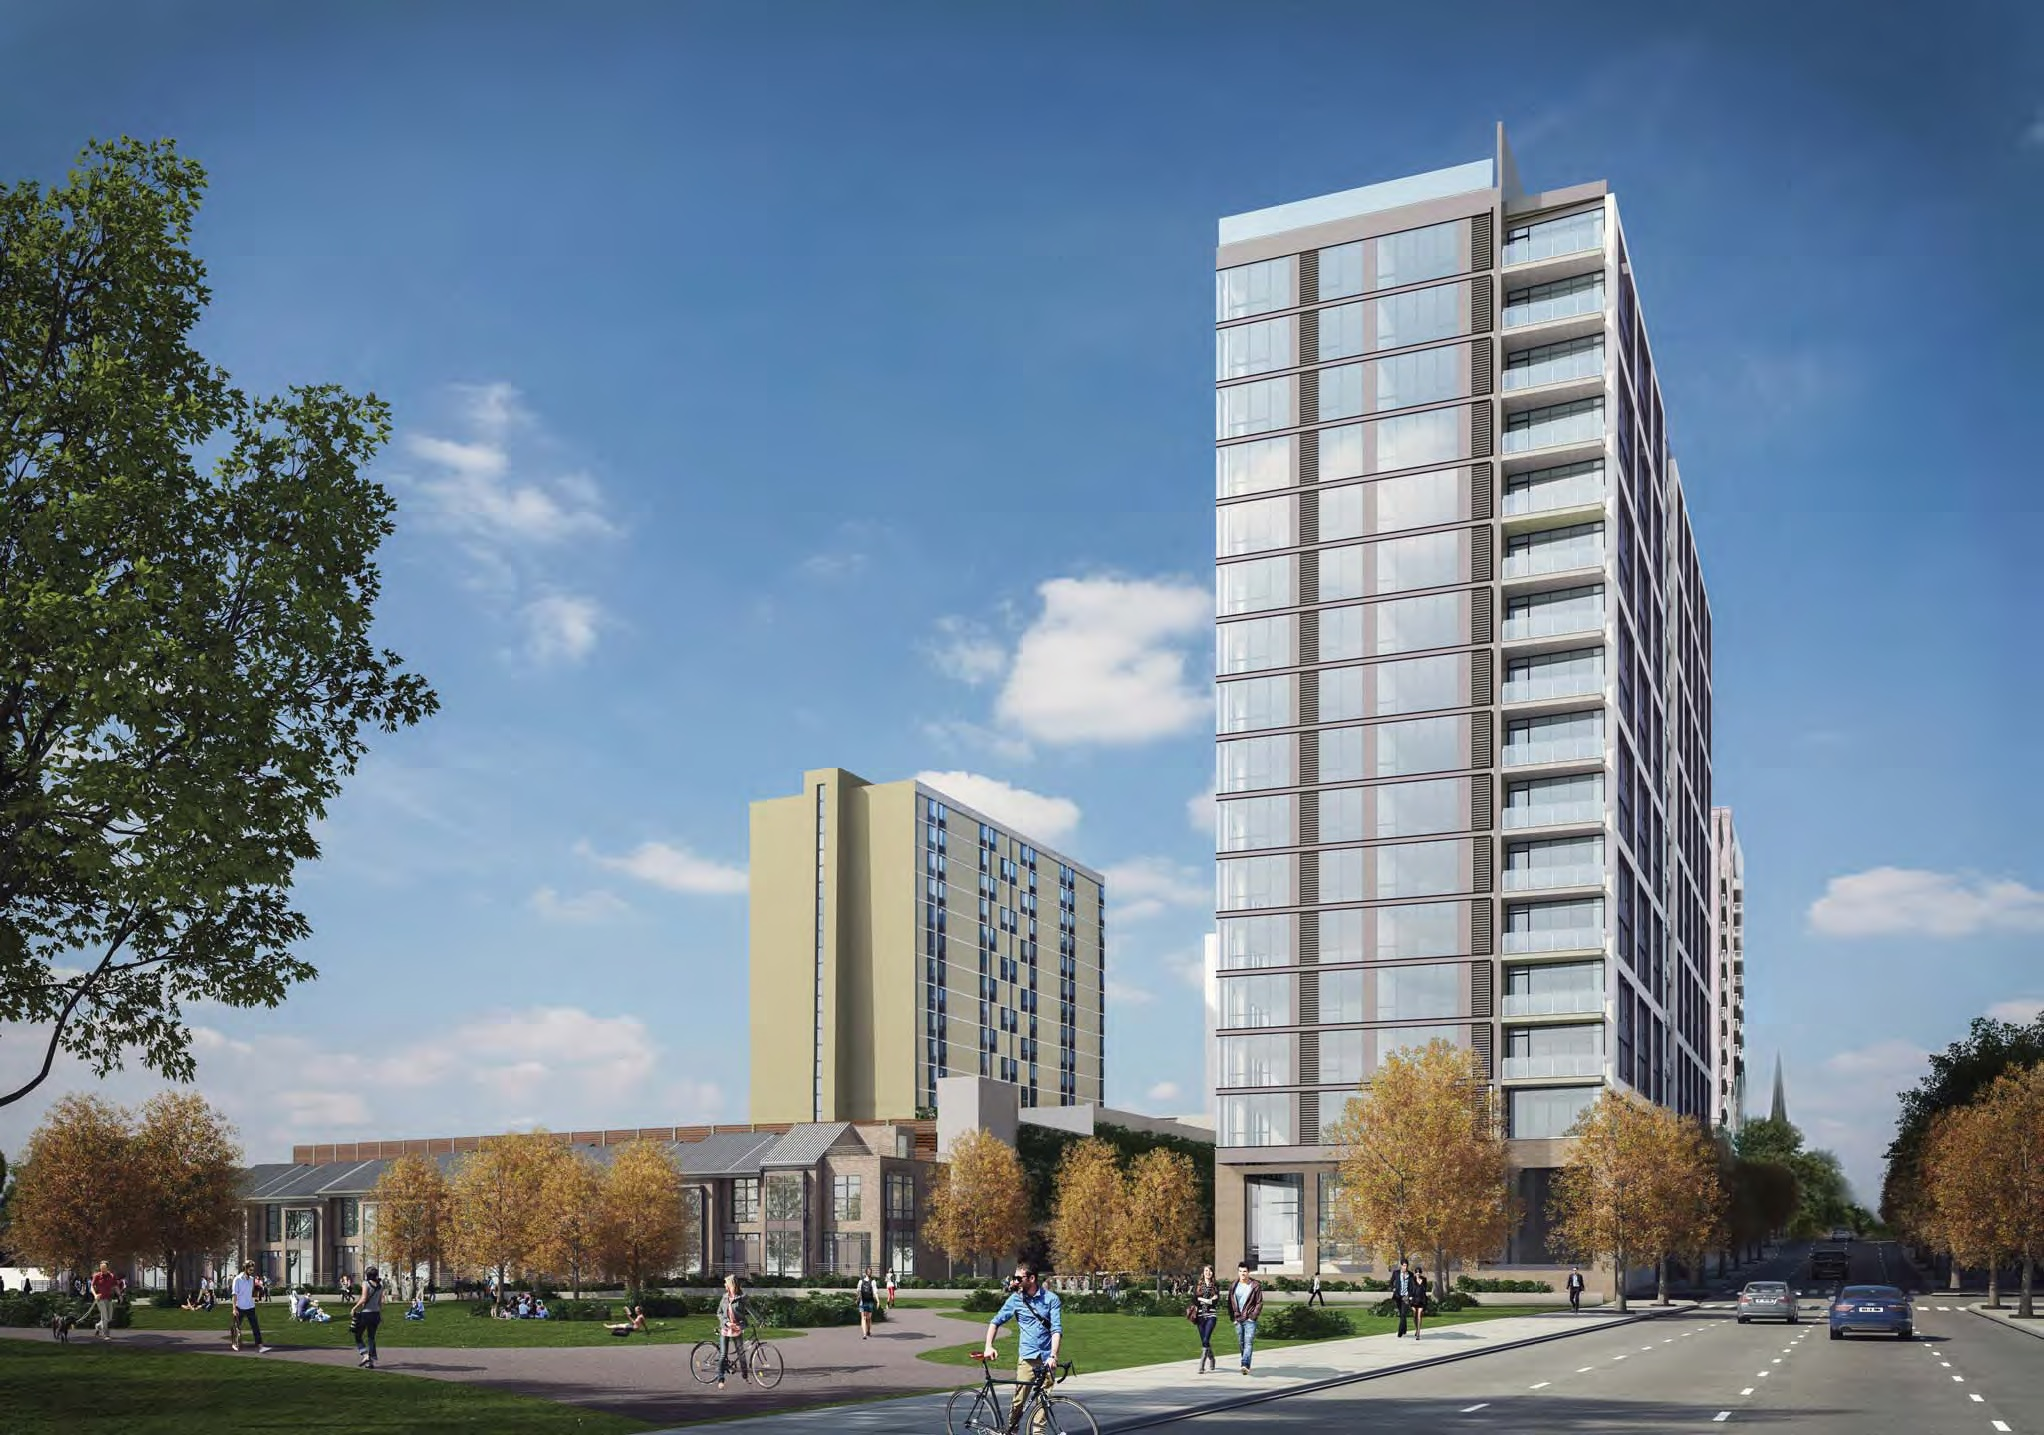 museum towers ii is another big apartment development in fairmount